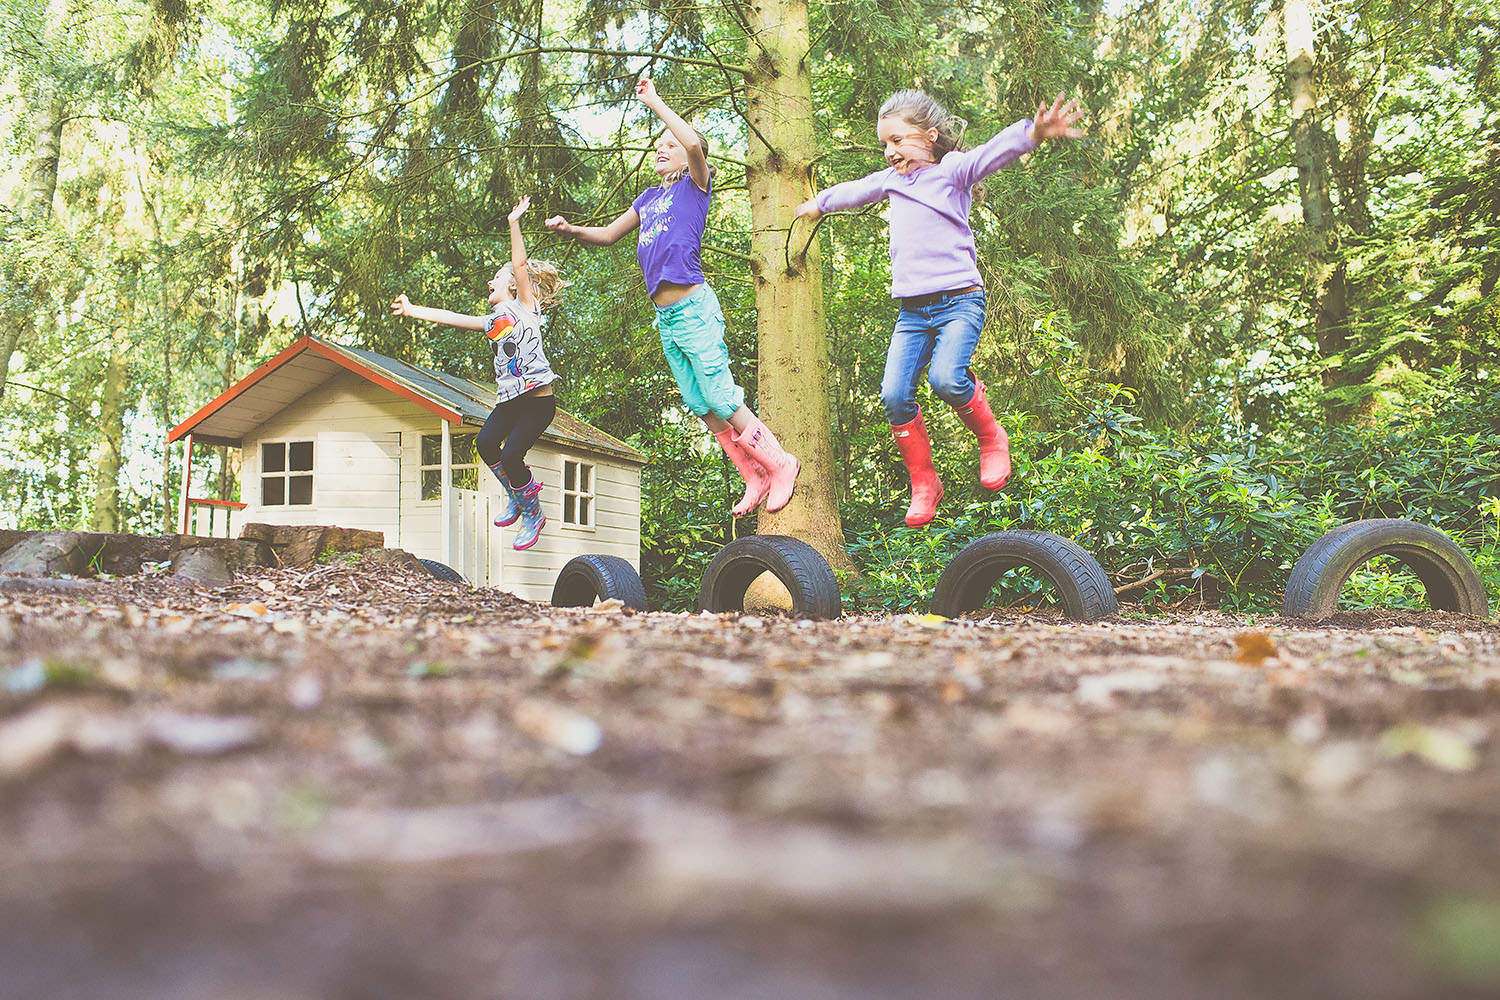 Three children jumping in the air.